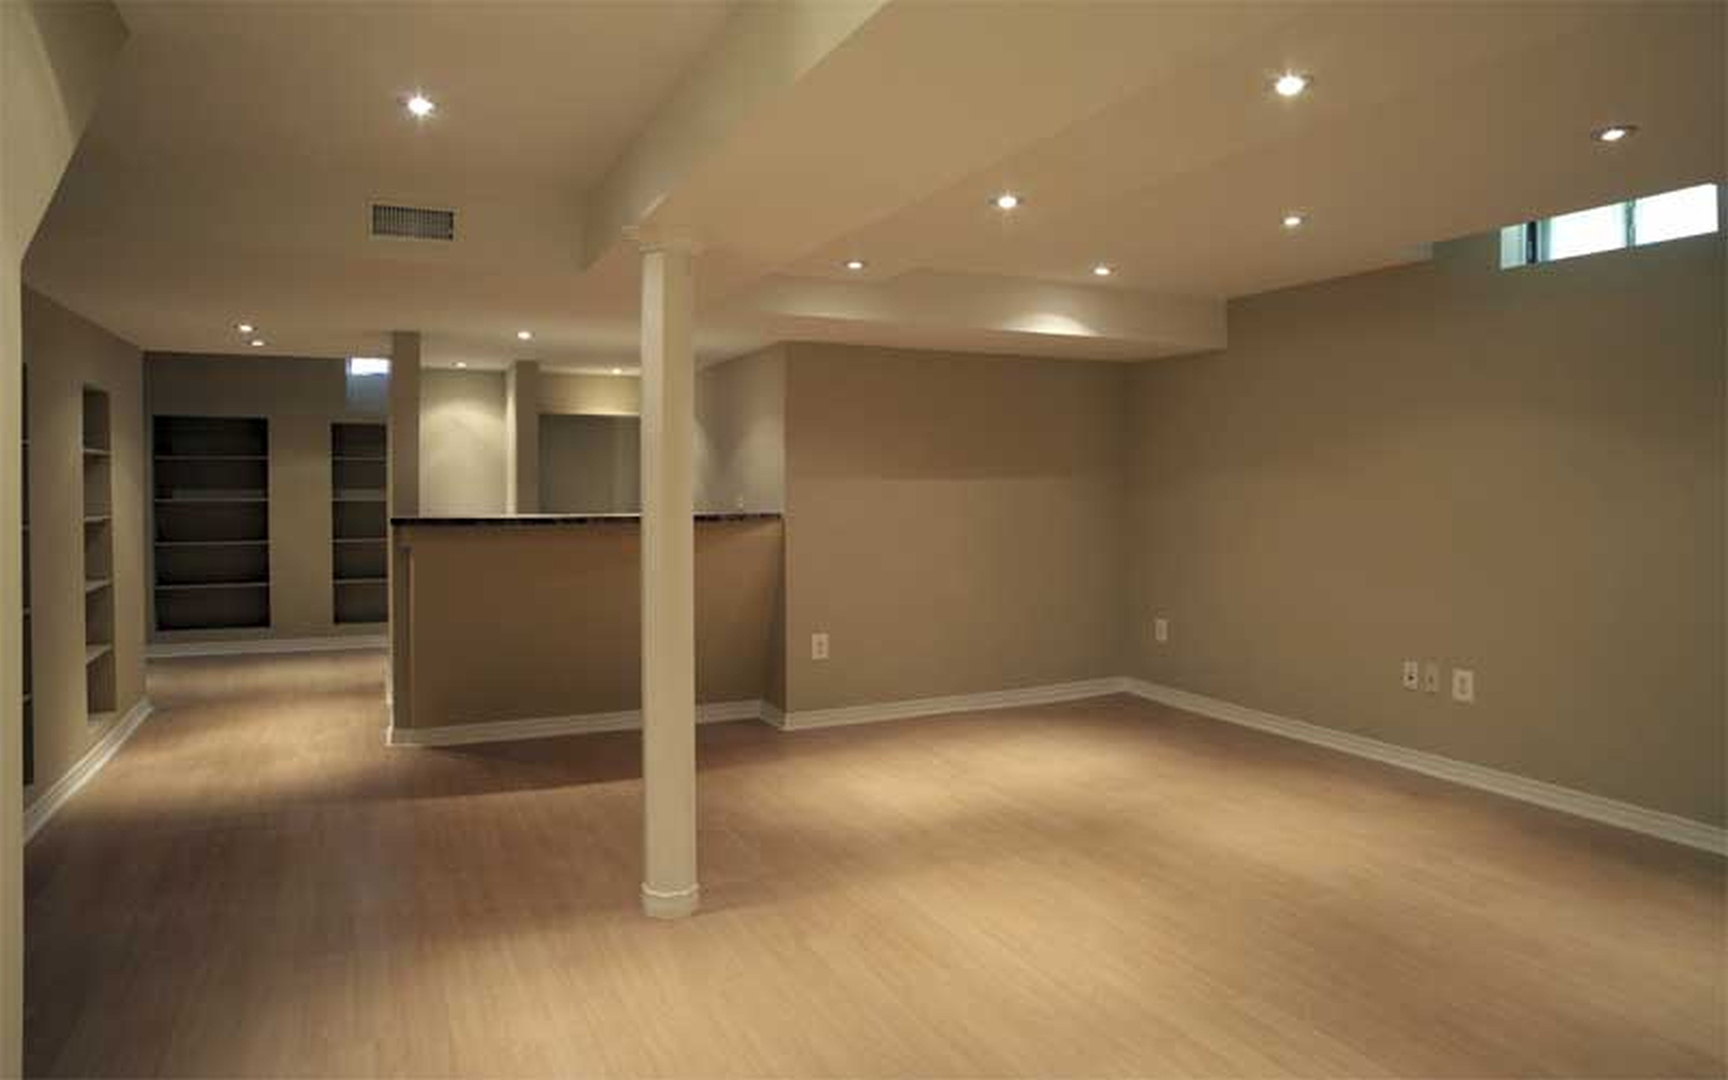 Basement Remodelling Basement Remodeling & Finishing East Orange Nj Basement